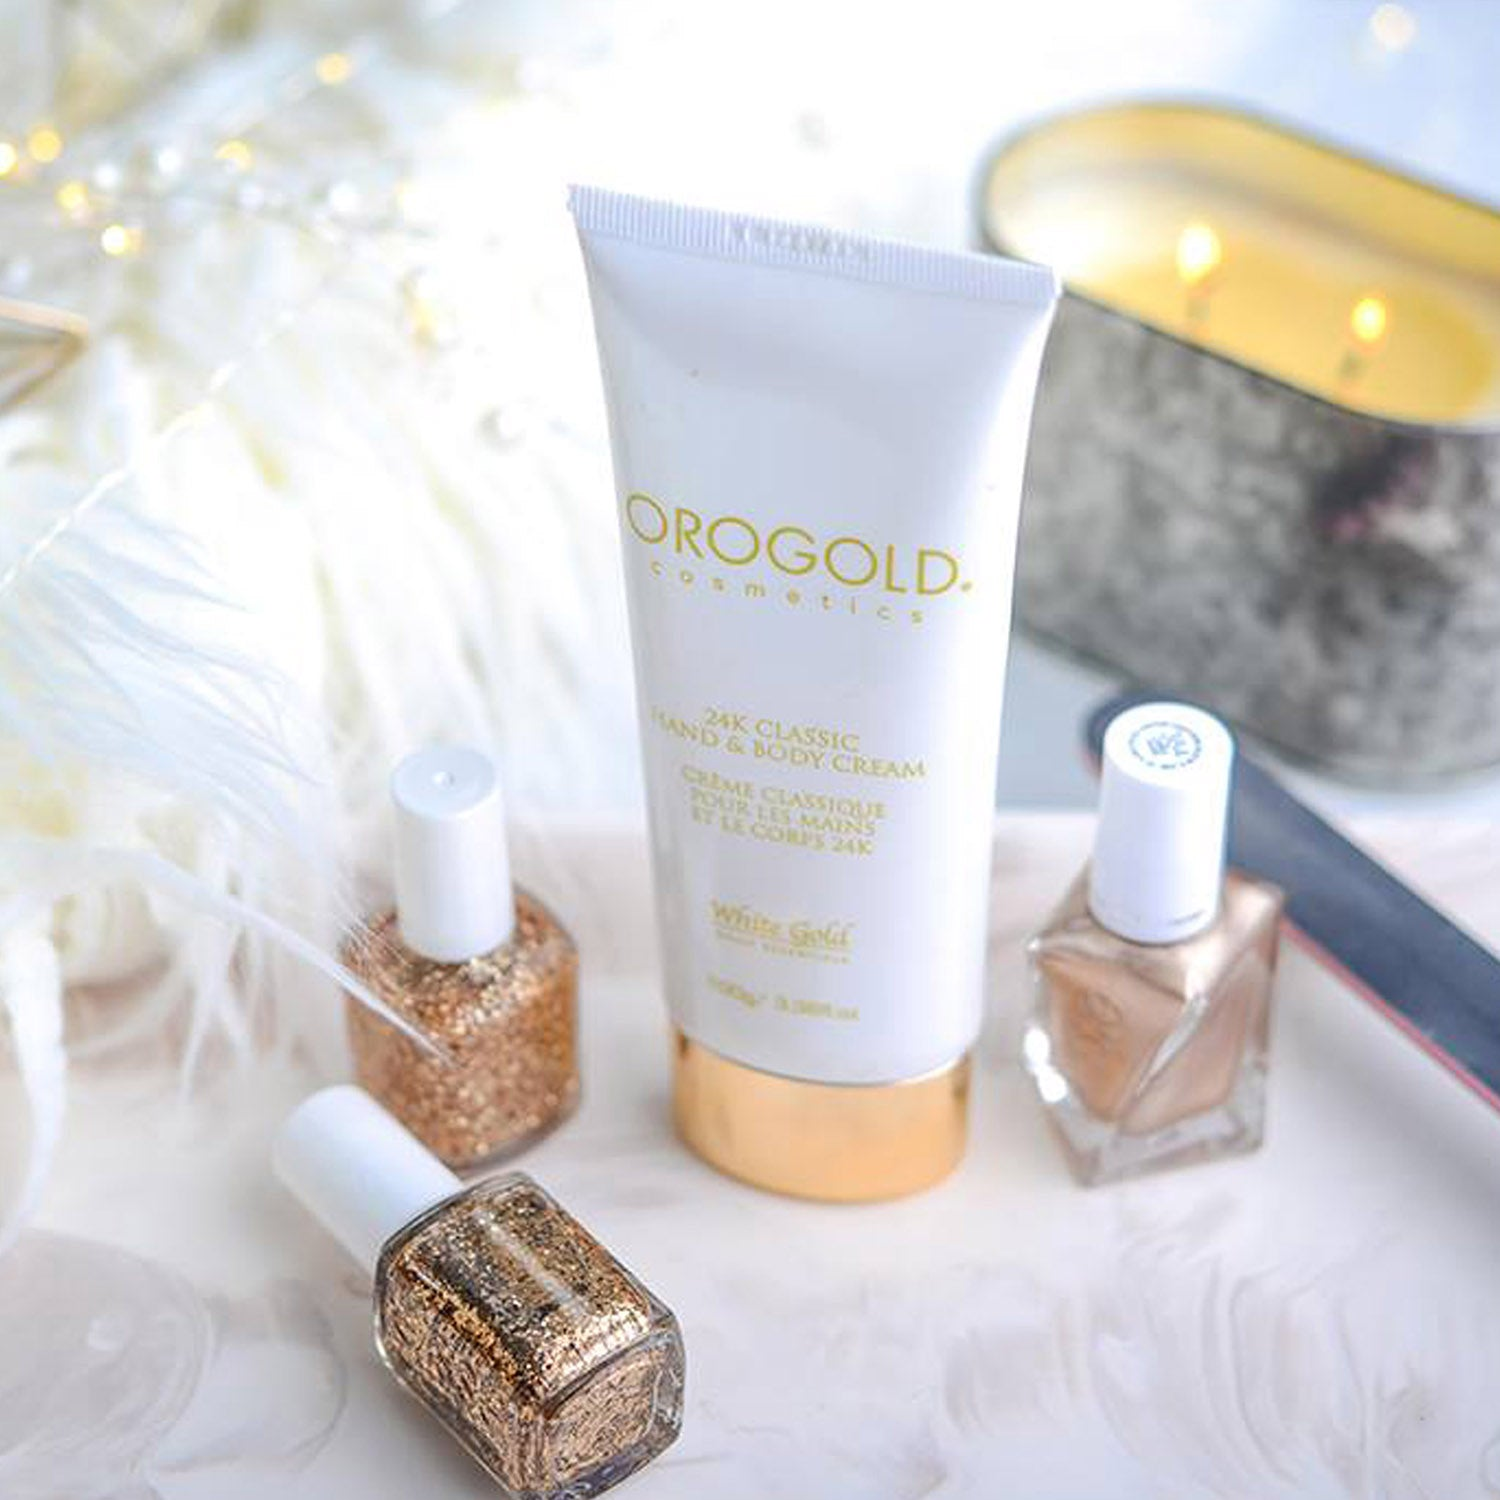 orogold hand and body cream